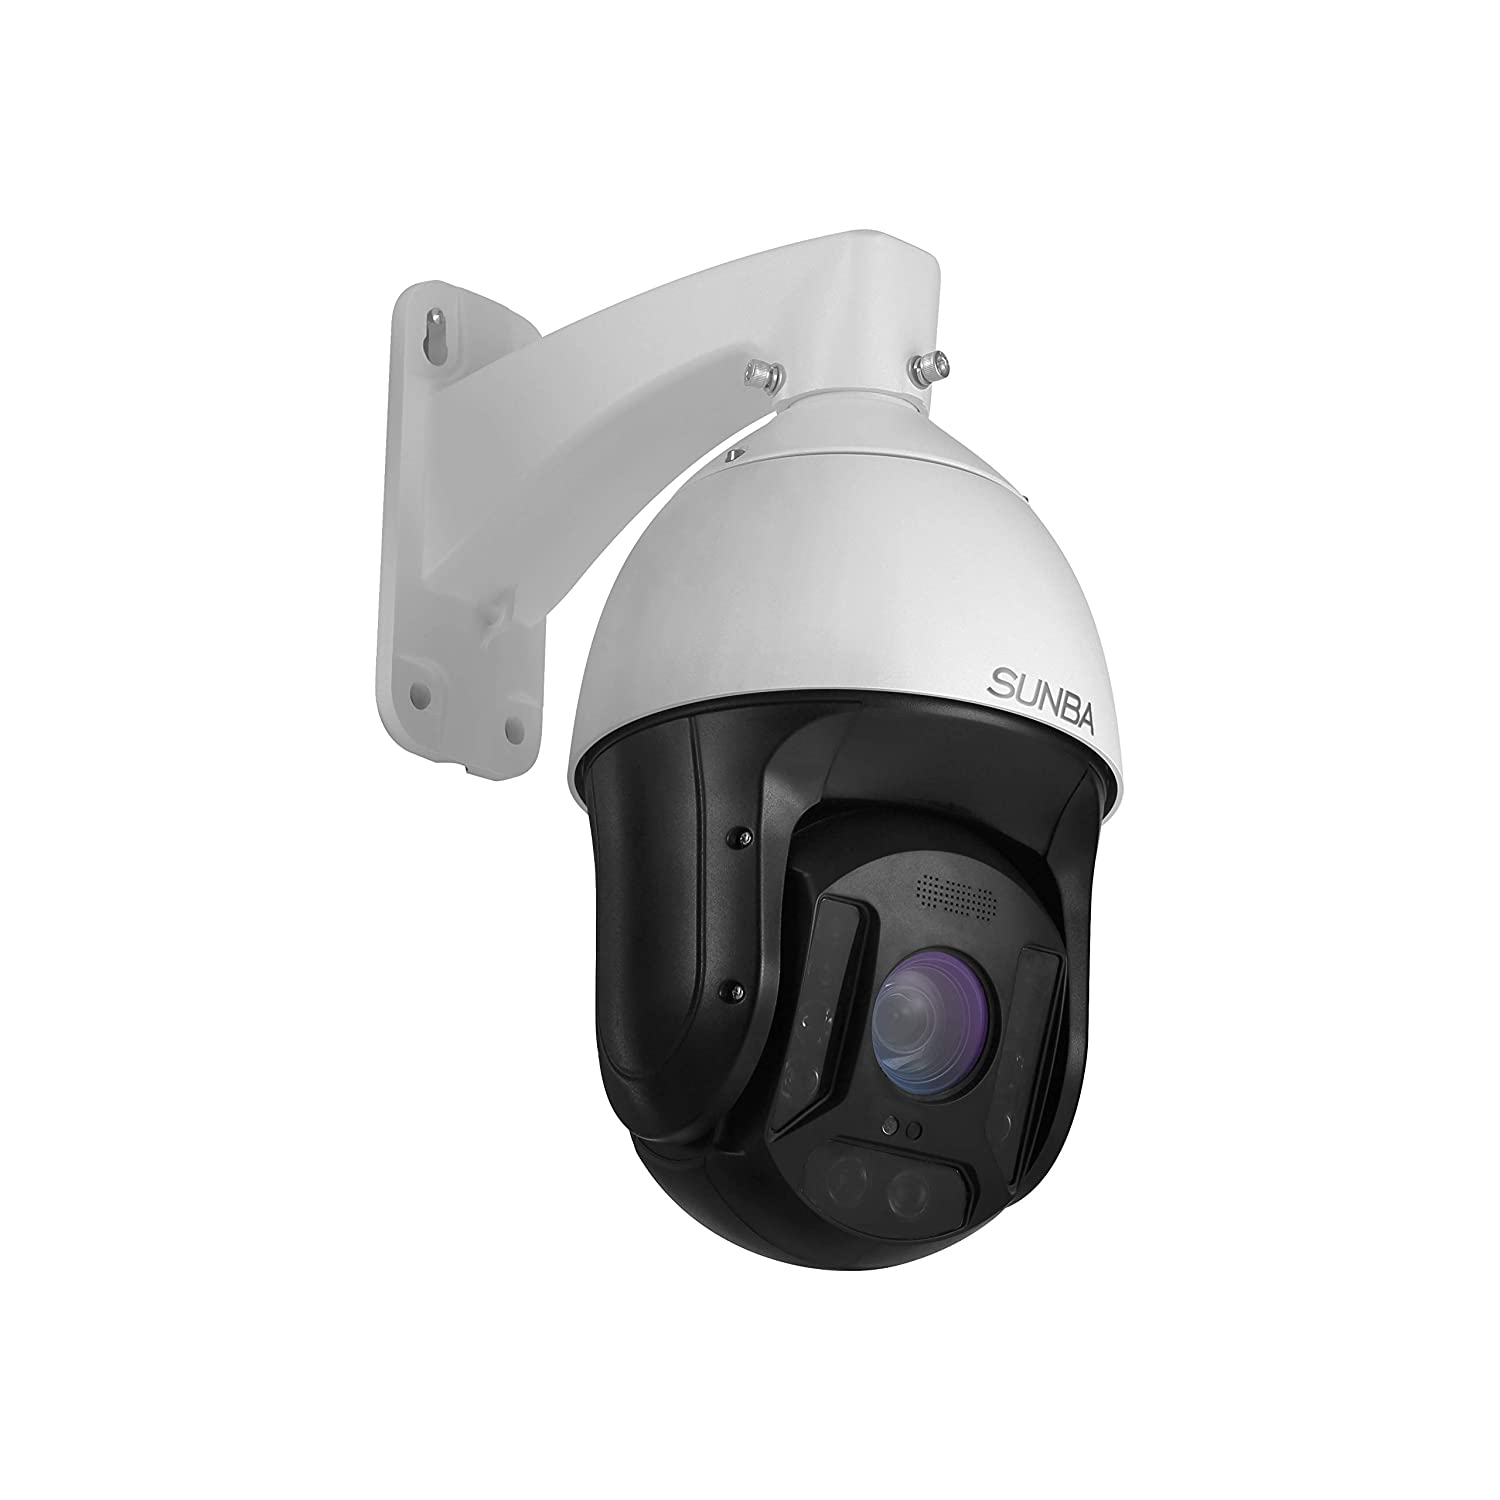 SUNBA 25X Optical Zoom 1080p IP PoE Outdoor PTZ Camera, Built-in Mic High Speed ONVIF Security PTZ Dome, Auto-Focus and up to 1000ft Night Vision 601-D25X